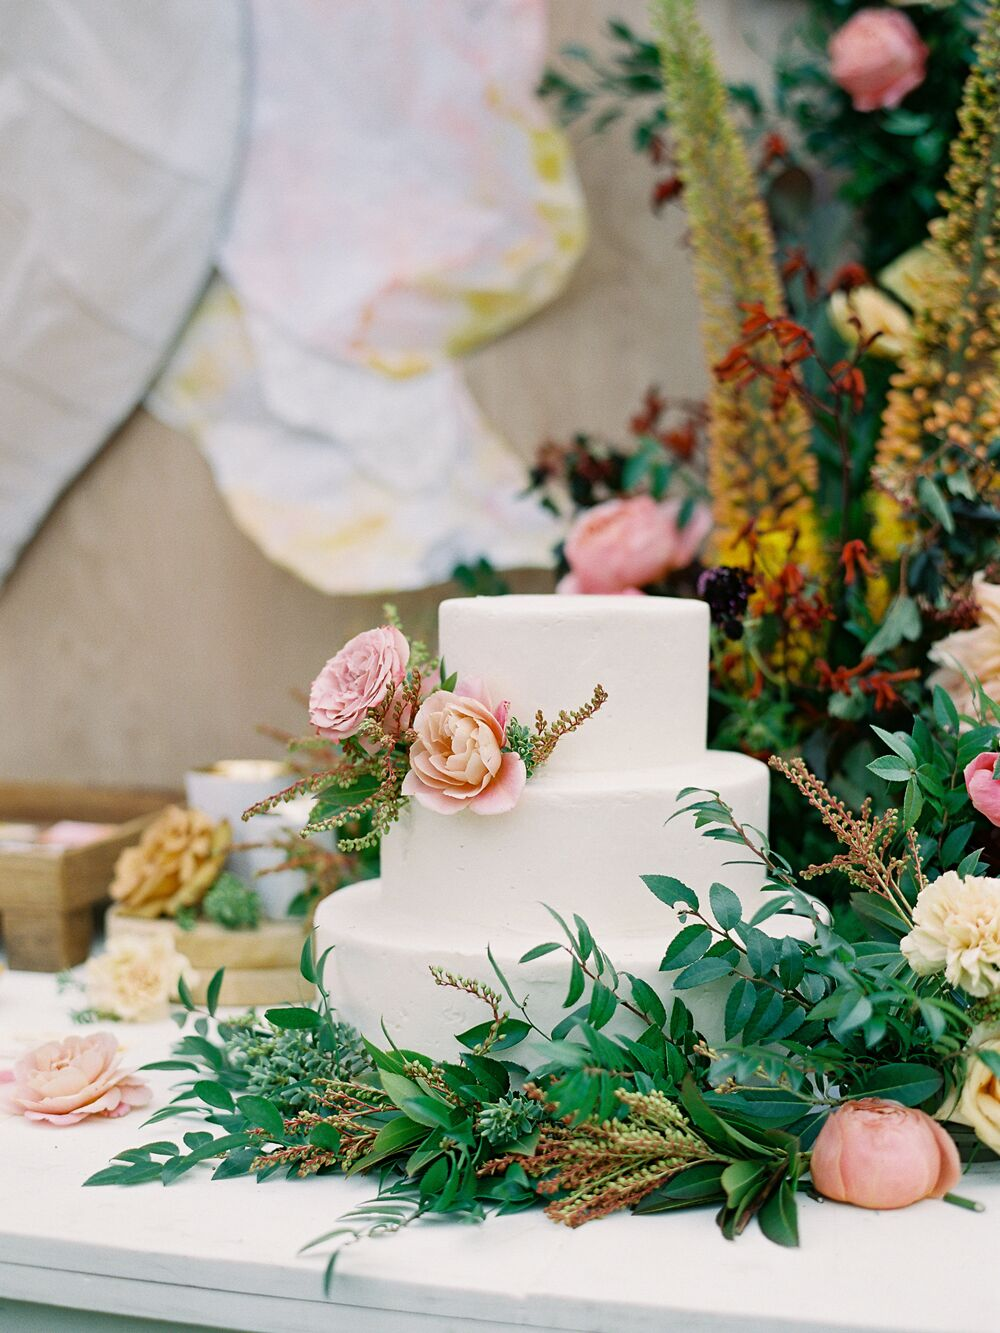 27 Simple Wedding Cakes That Prove Less Is More